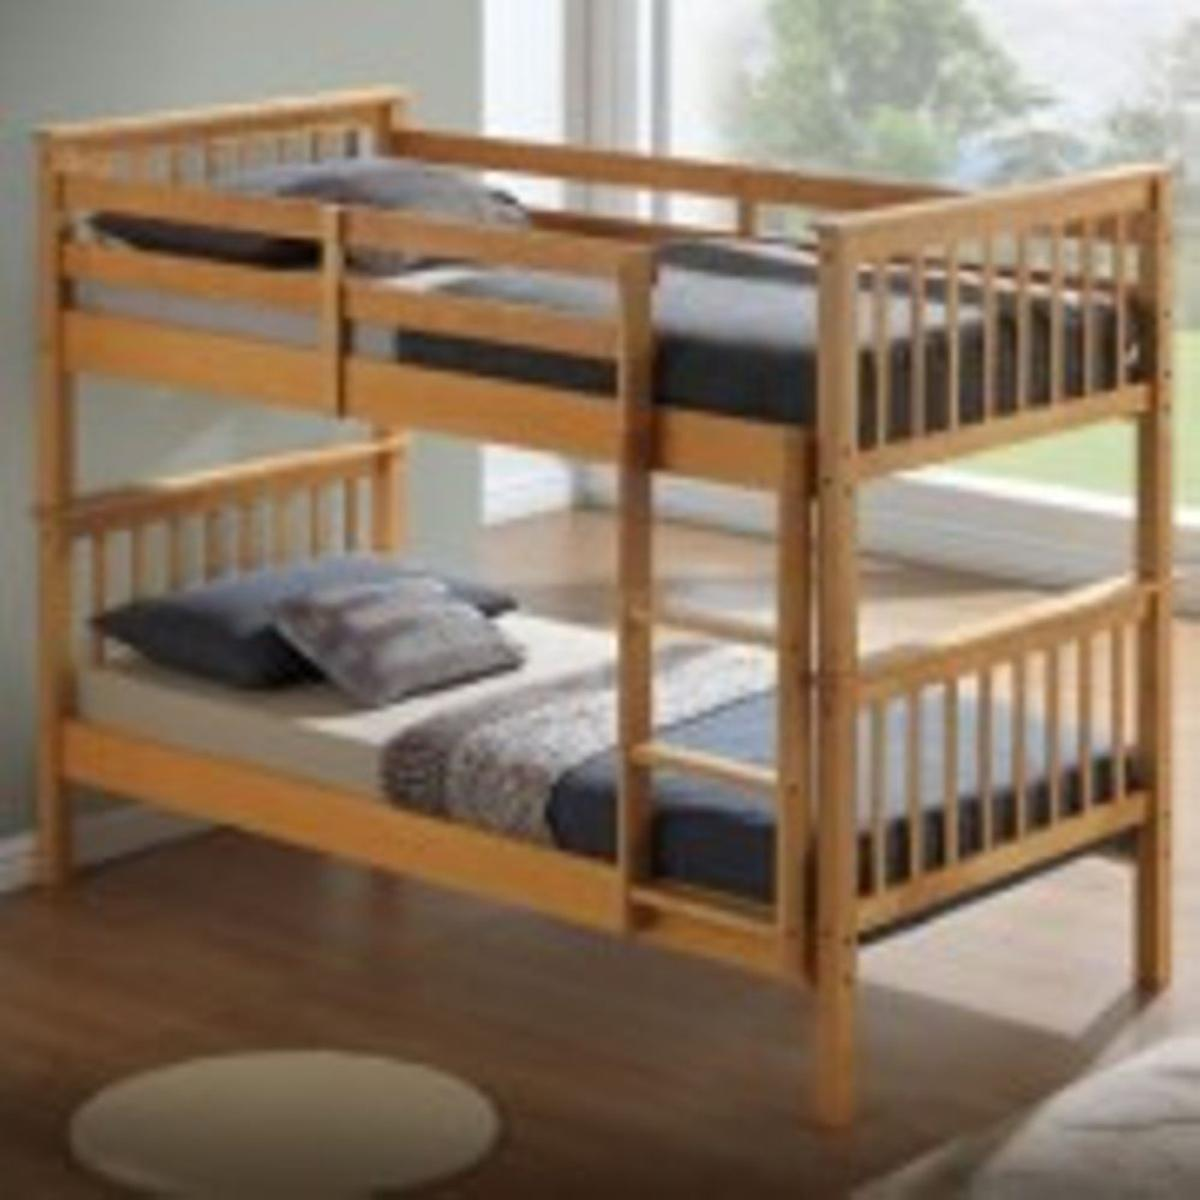 Picture of: Wooden Bunk Bed Ortho Mattress Single In Ls122ua Leeds For 269 99 For Sale Shpock